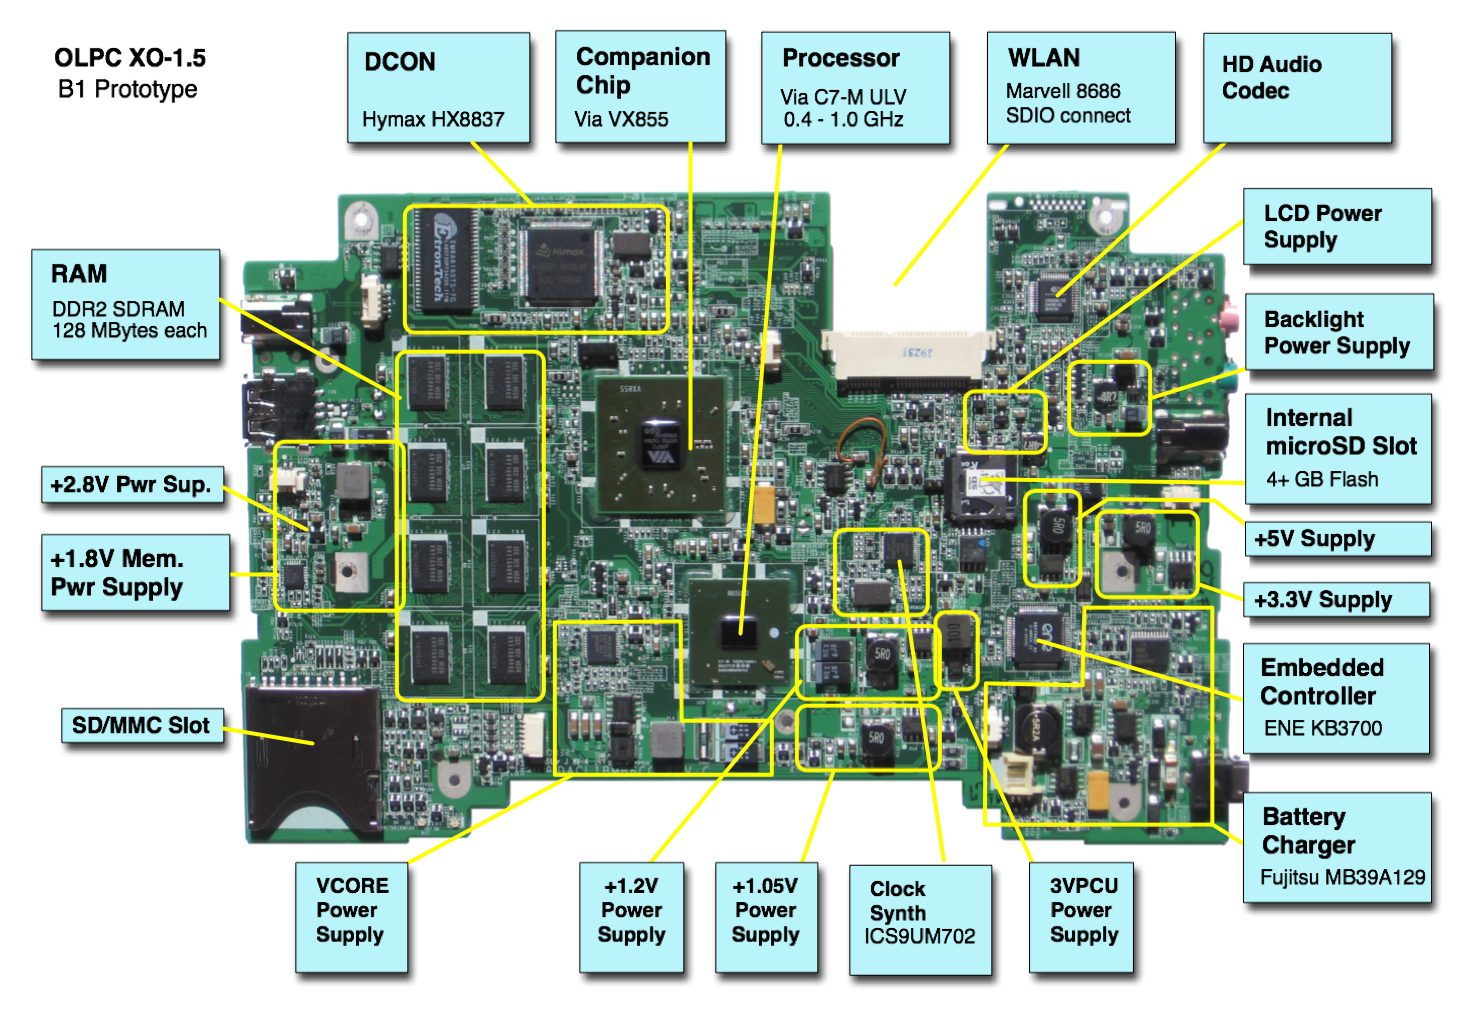 Laptop Notebook Motherboard Circuit Diagram. Computer Build, Pc Computer,  Computer Technology, Computer